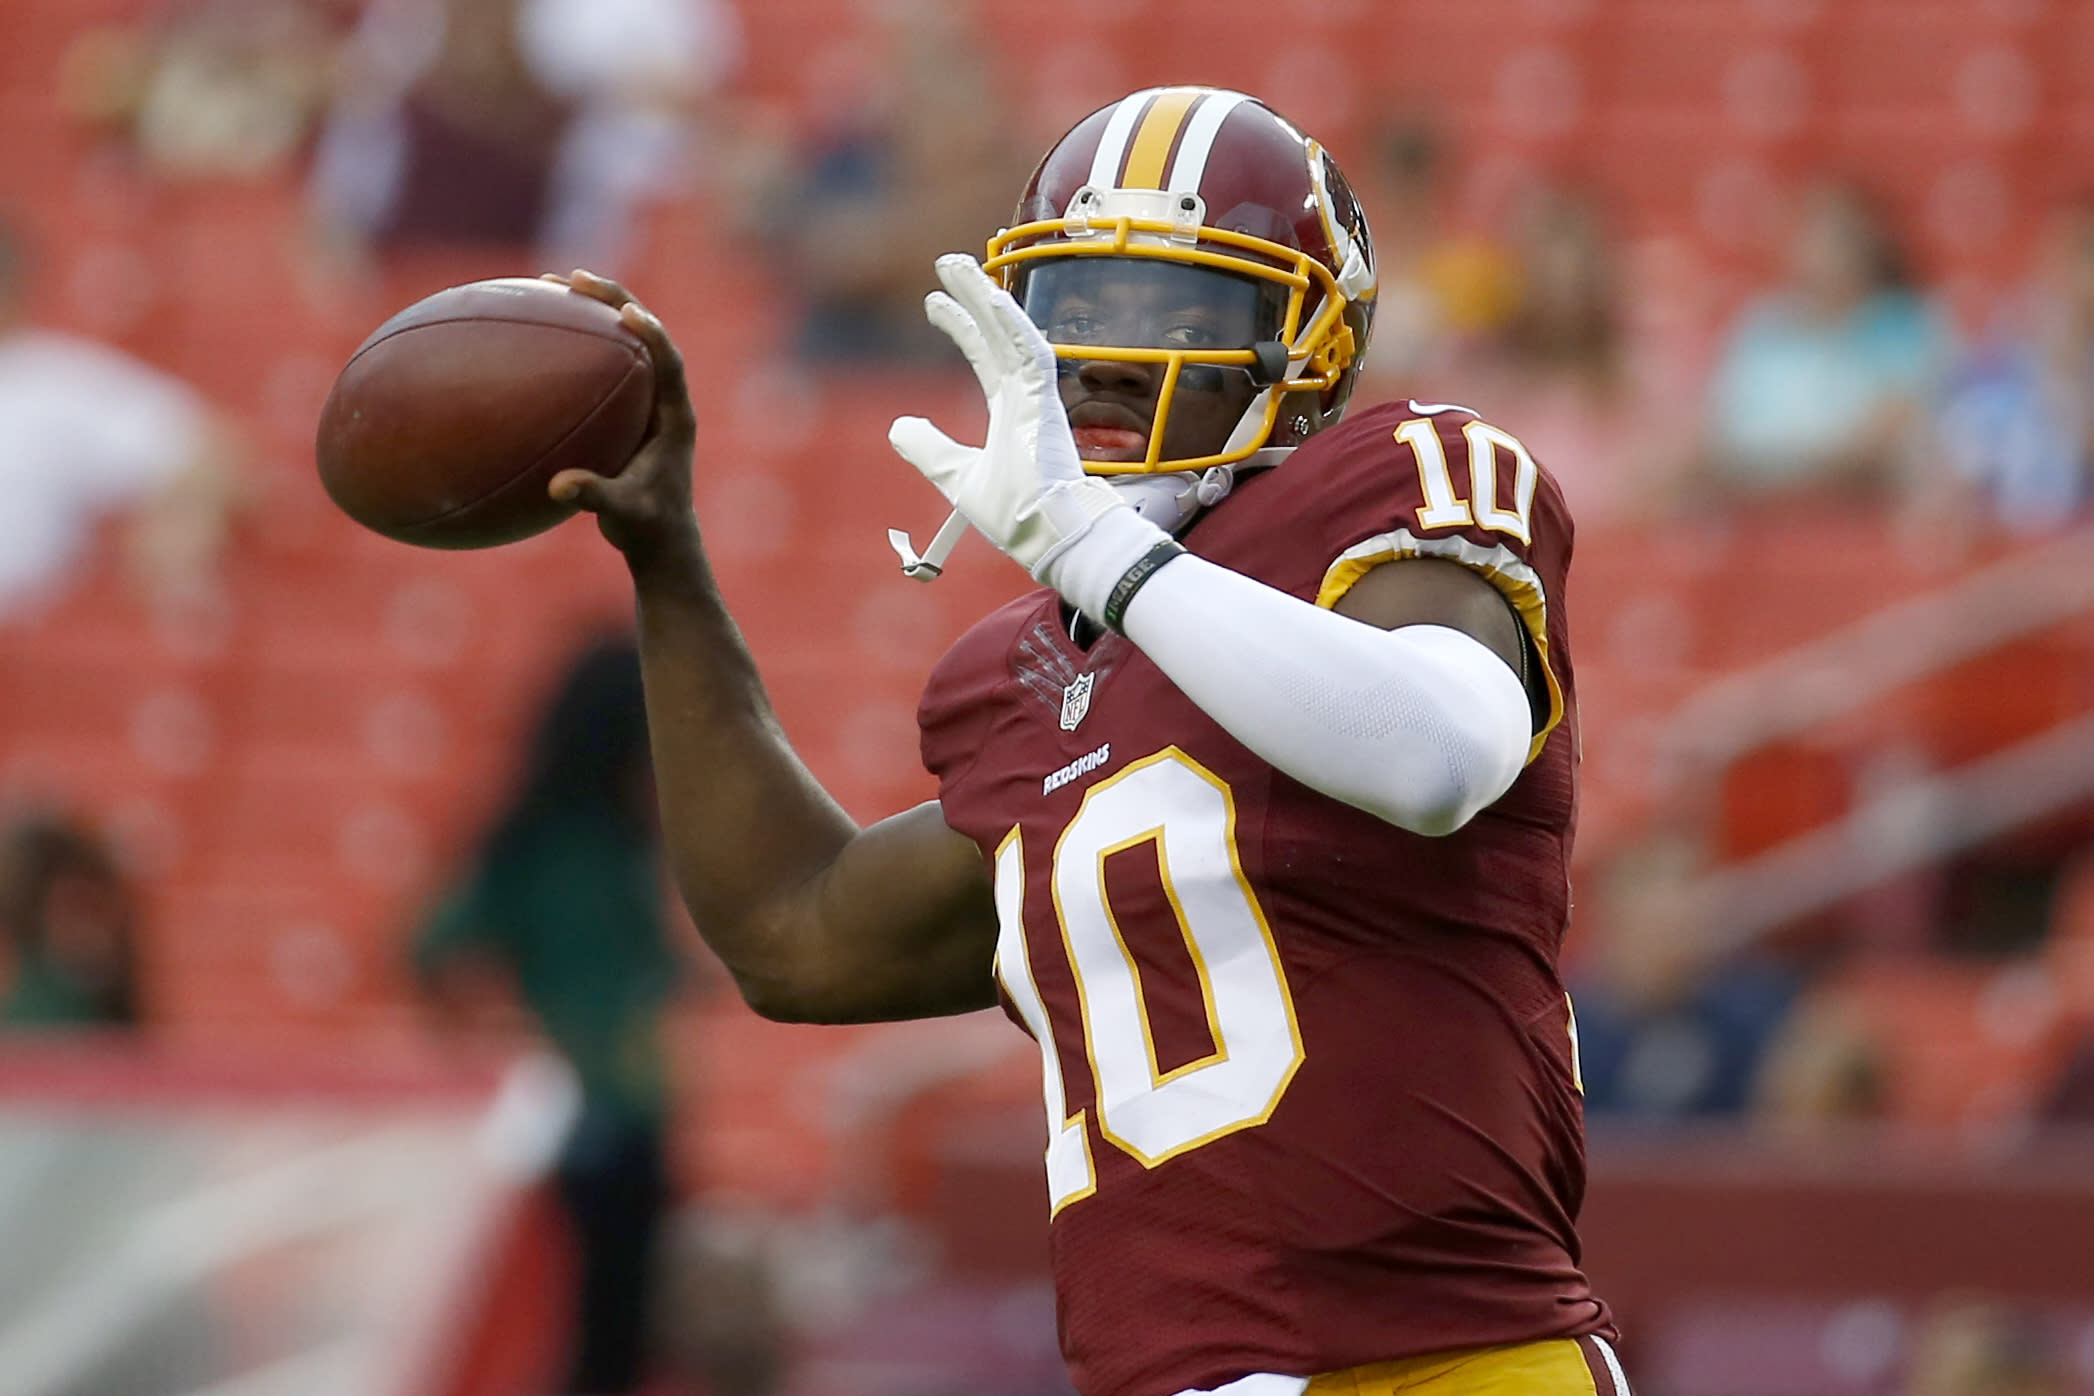 OPEN THREAD: Have we seen the last of RG3 on Redskins?